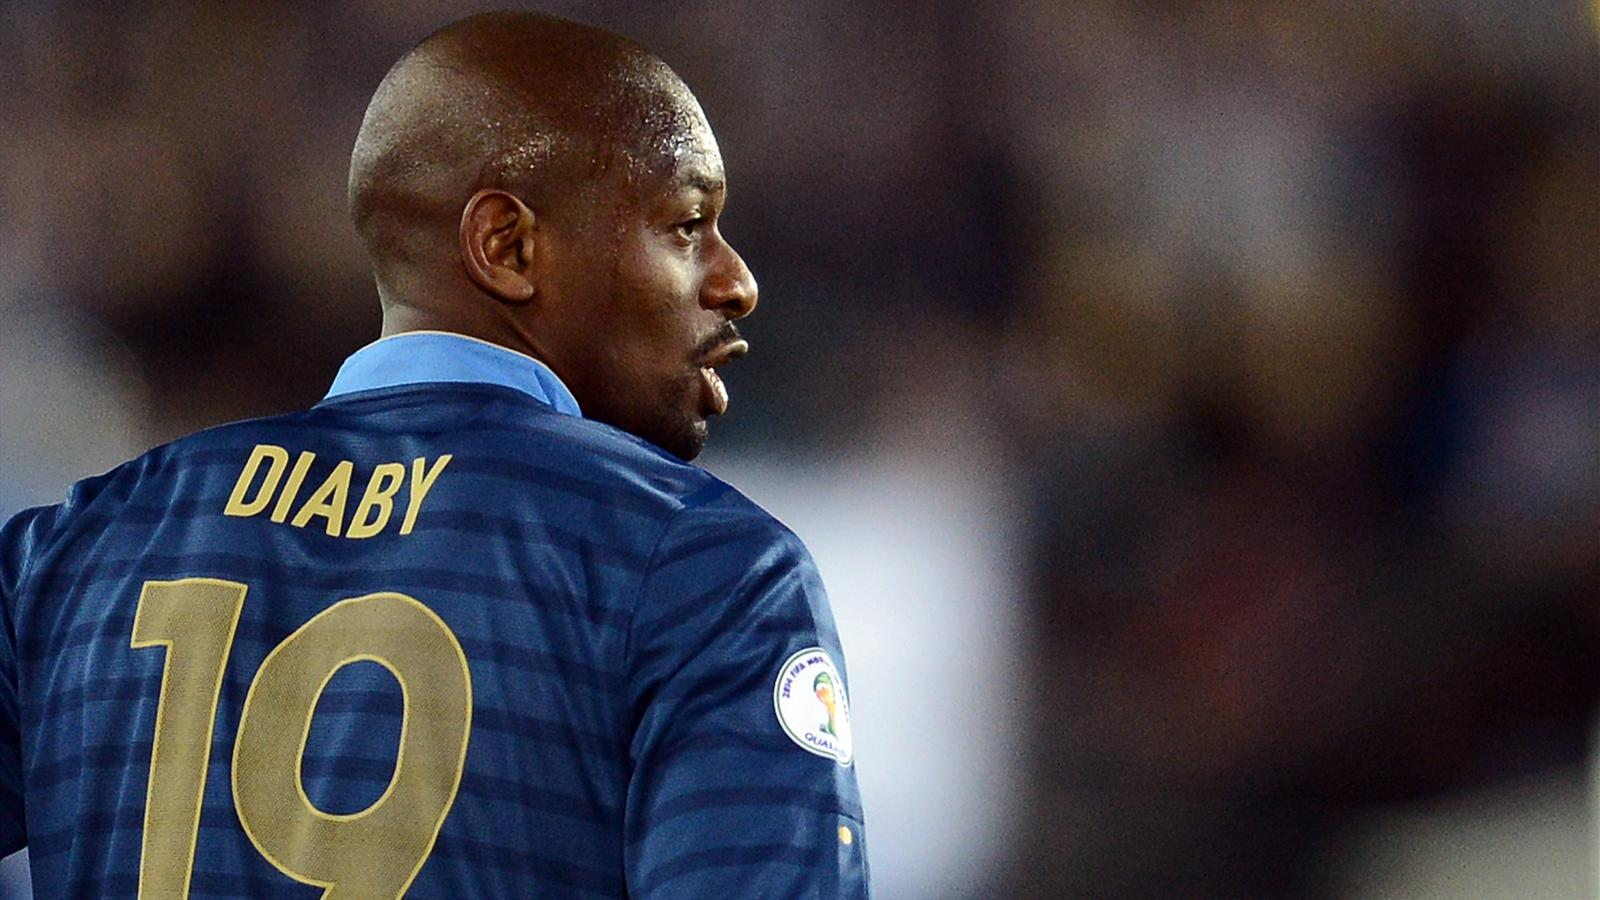 Diaby has 16 caps for France